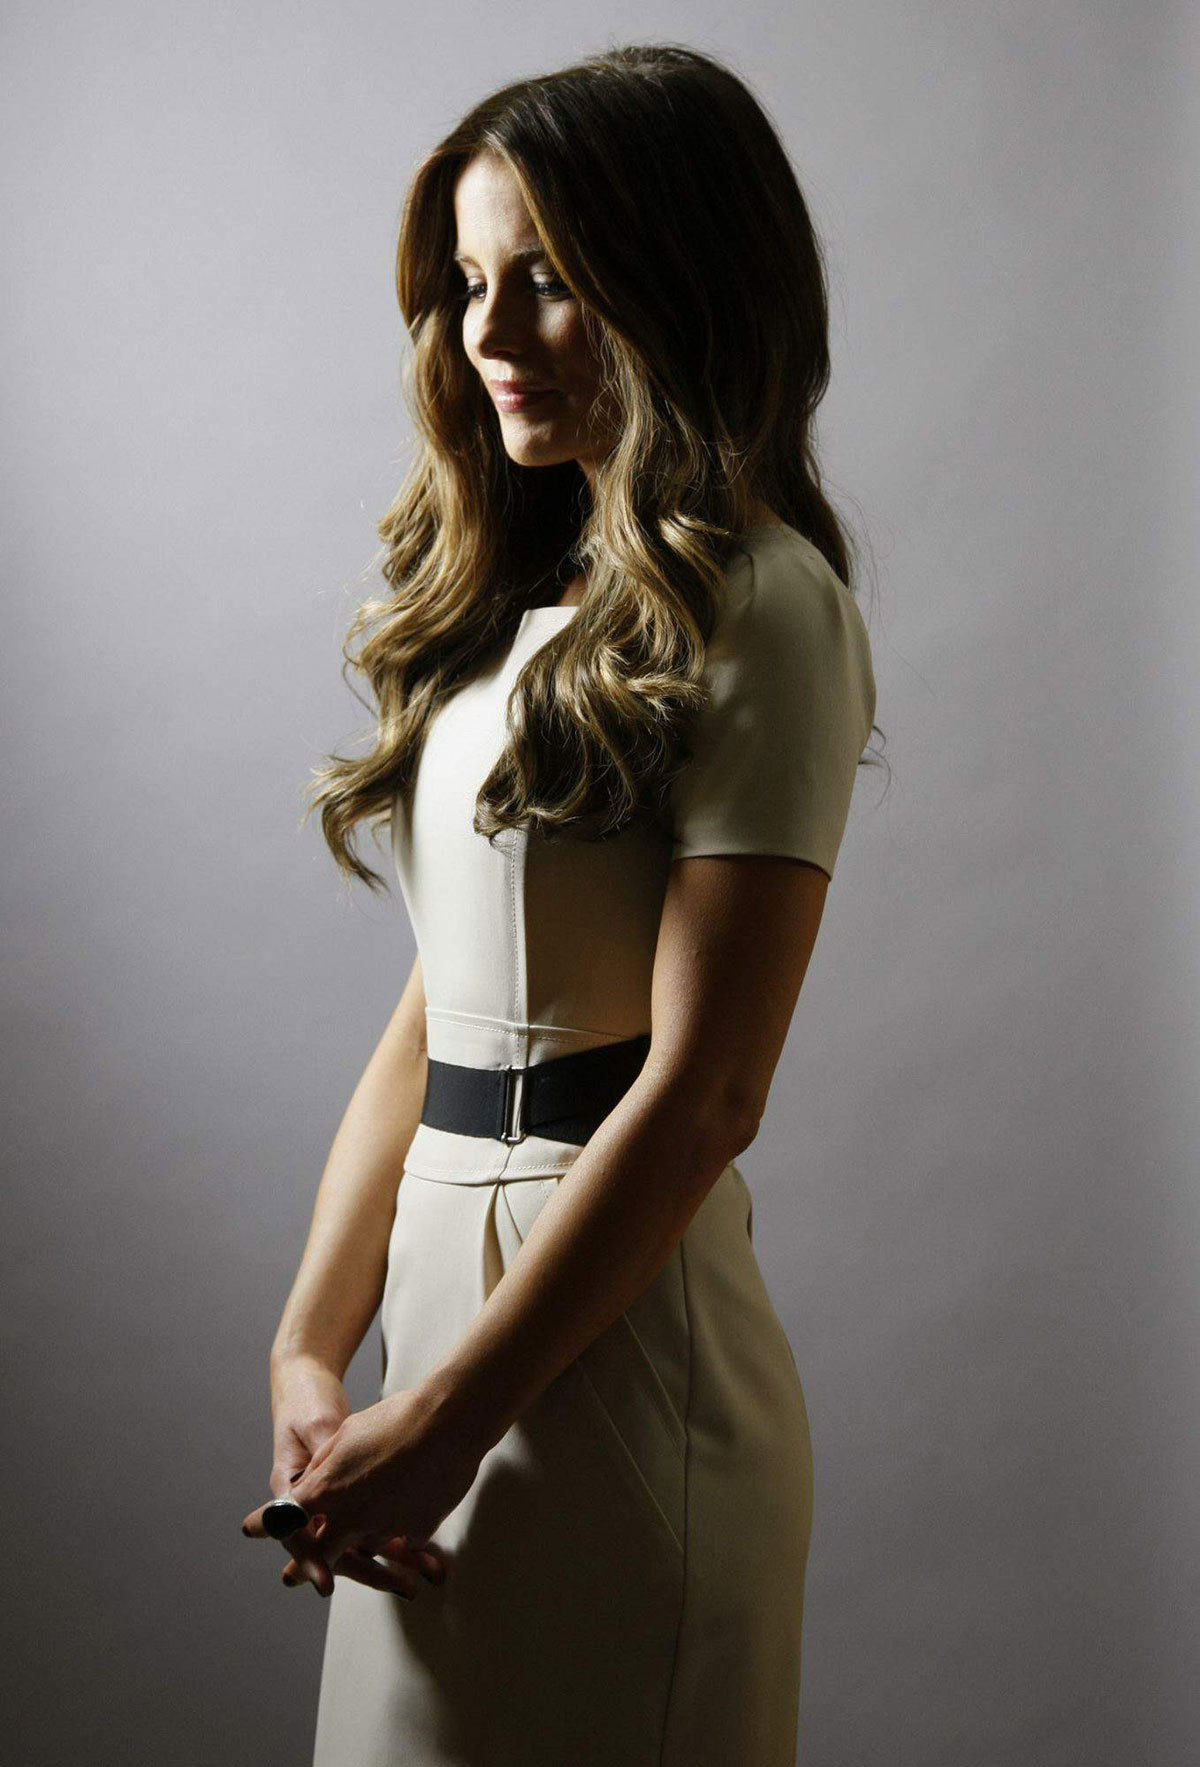 KATE BECKINSALE in LA Times Magazine Photoshoot by Gary ...